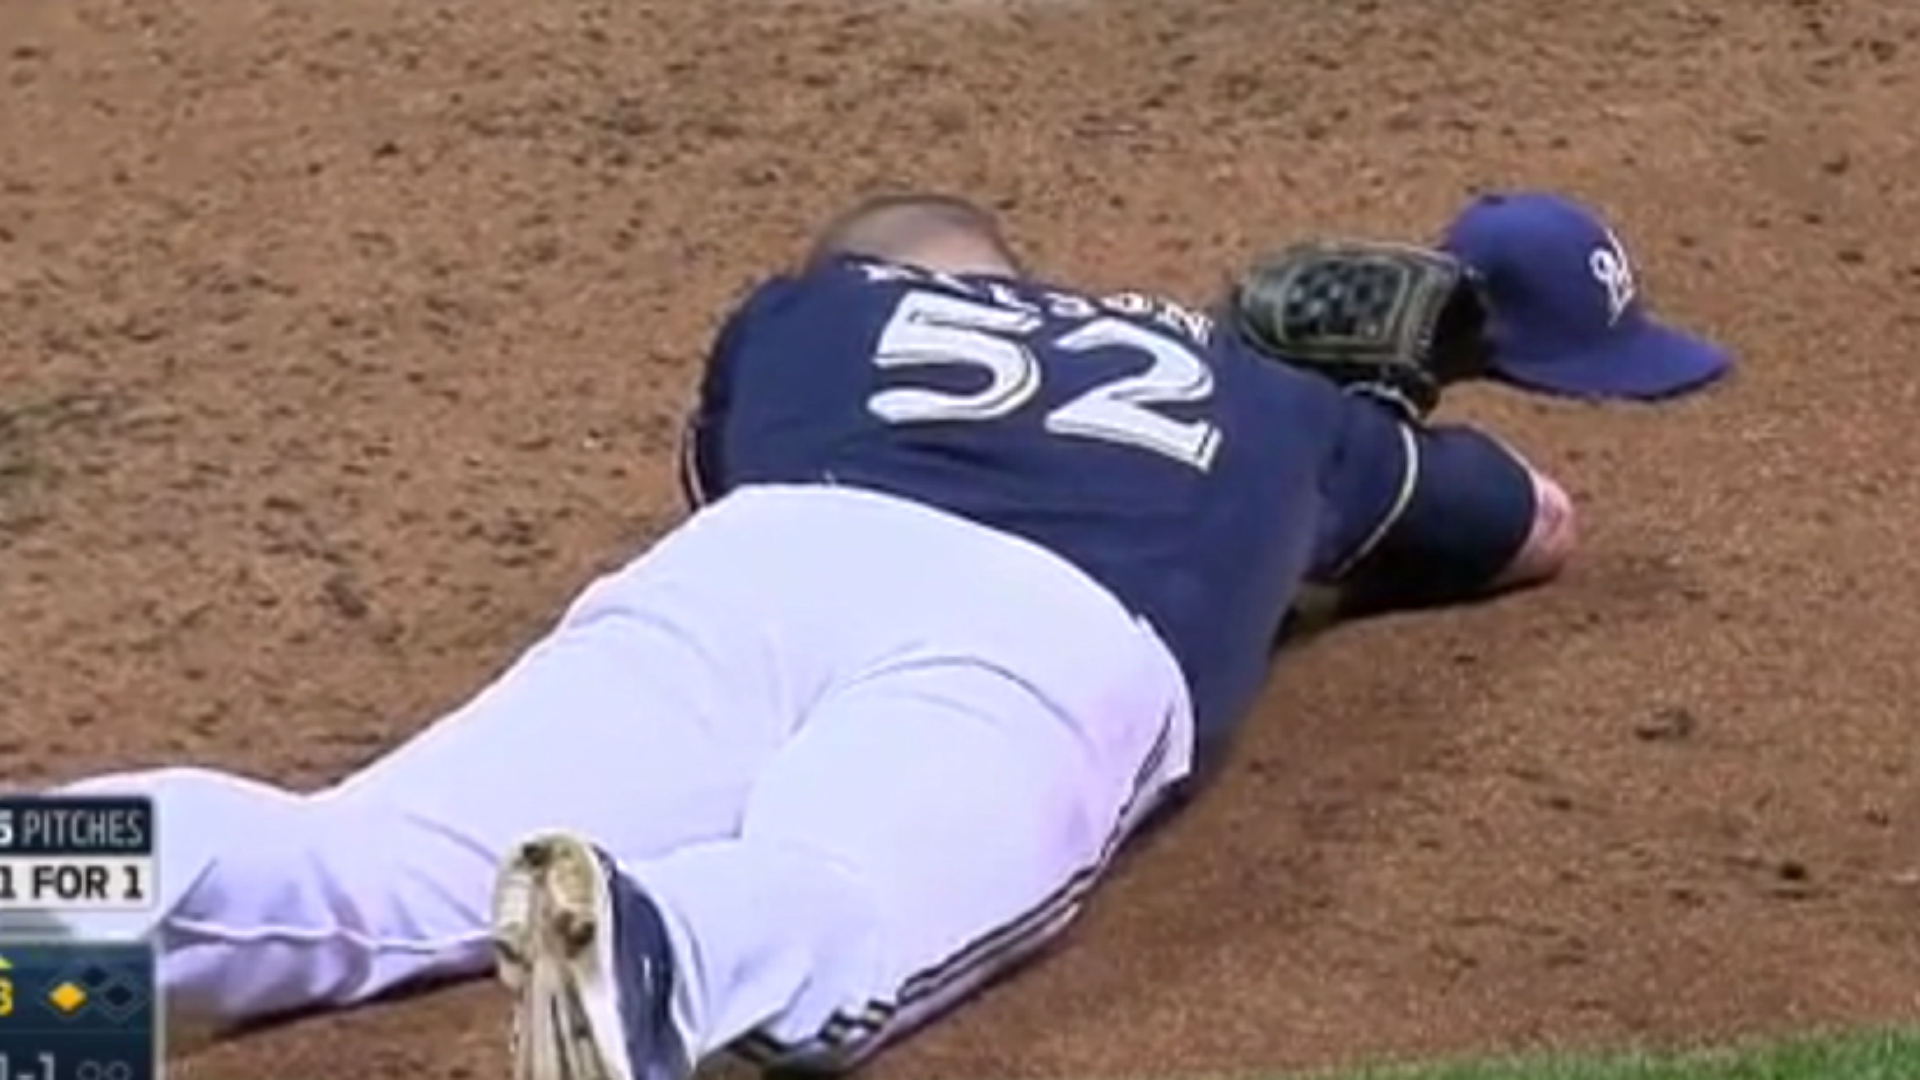 Jimmy Nelson lay on the ground after being hit by line drive